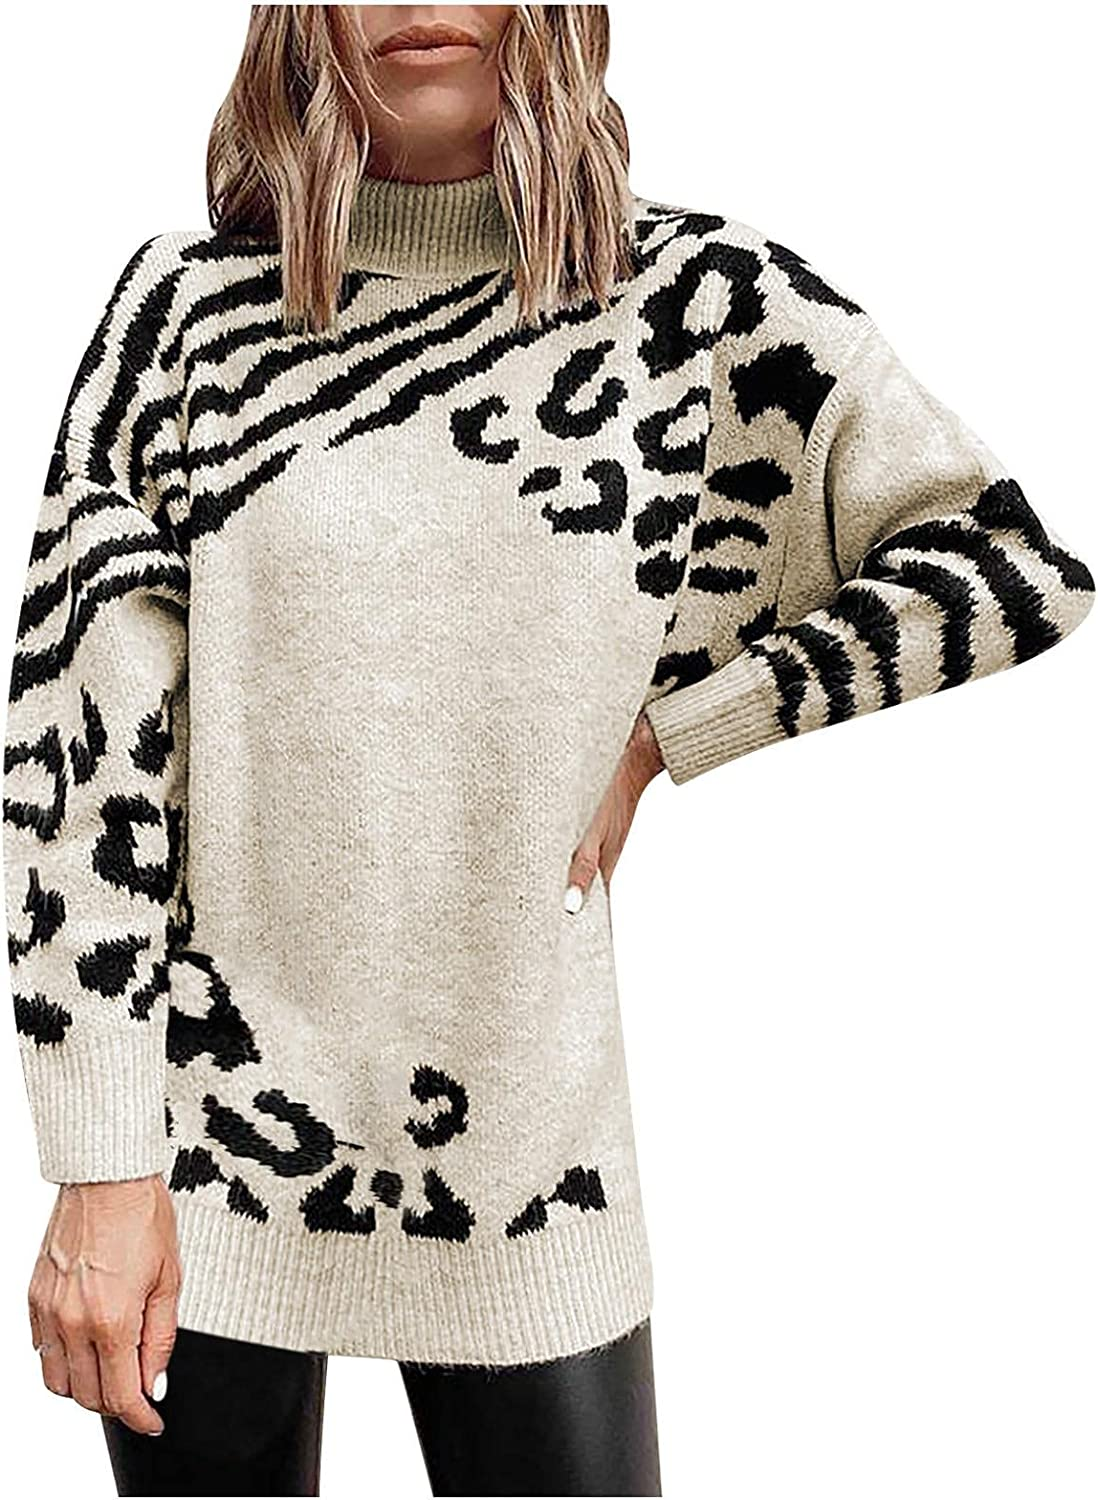 Womens Fall Turtleneck Sweater Comfy Soft Long Sleeve Plus Size Coat Casual Breathable Jumper Leopard Print Tops